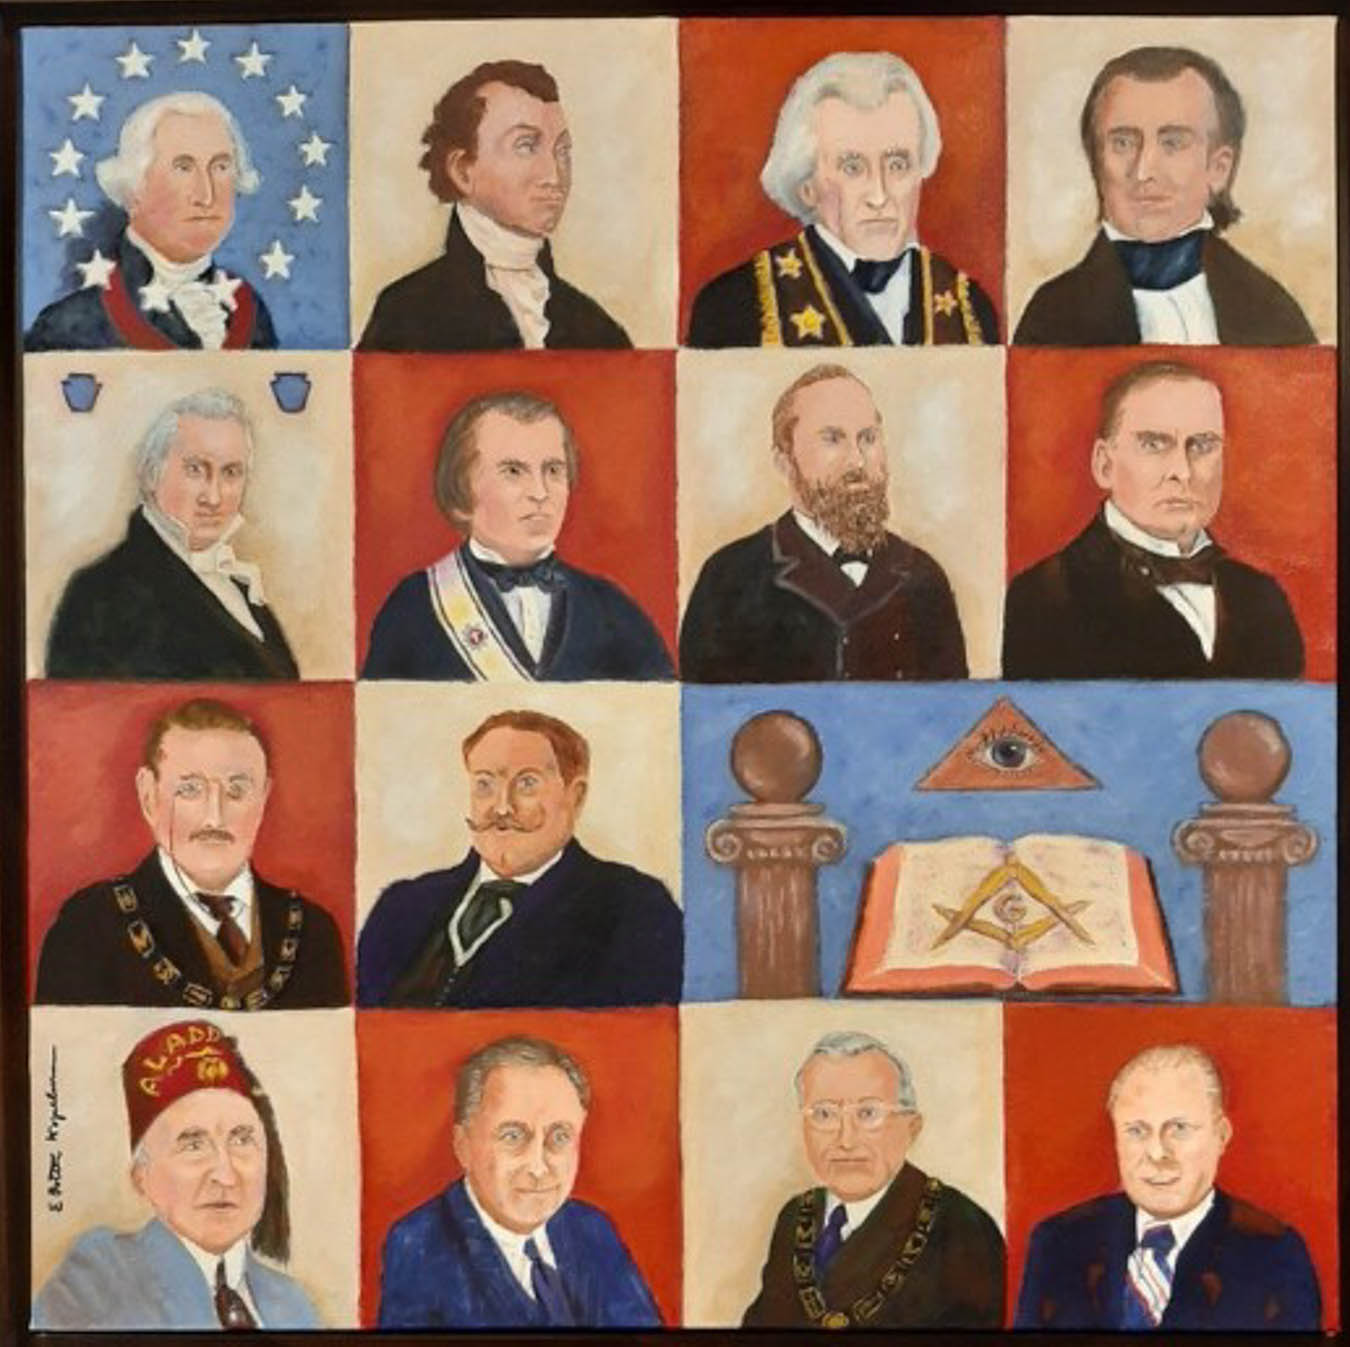 Painting of 14 presidents who were Freemasons in a red, white and blue motif.